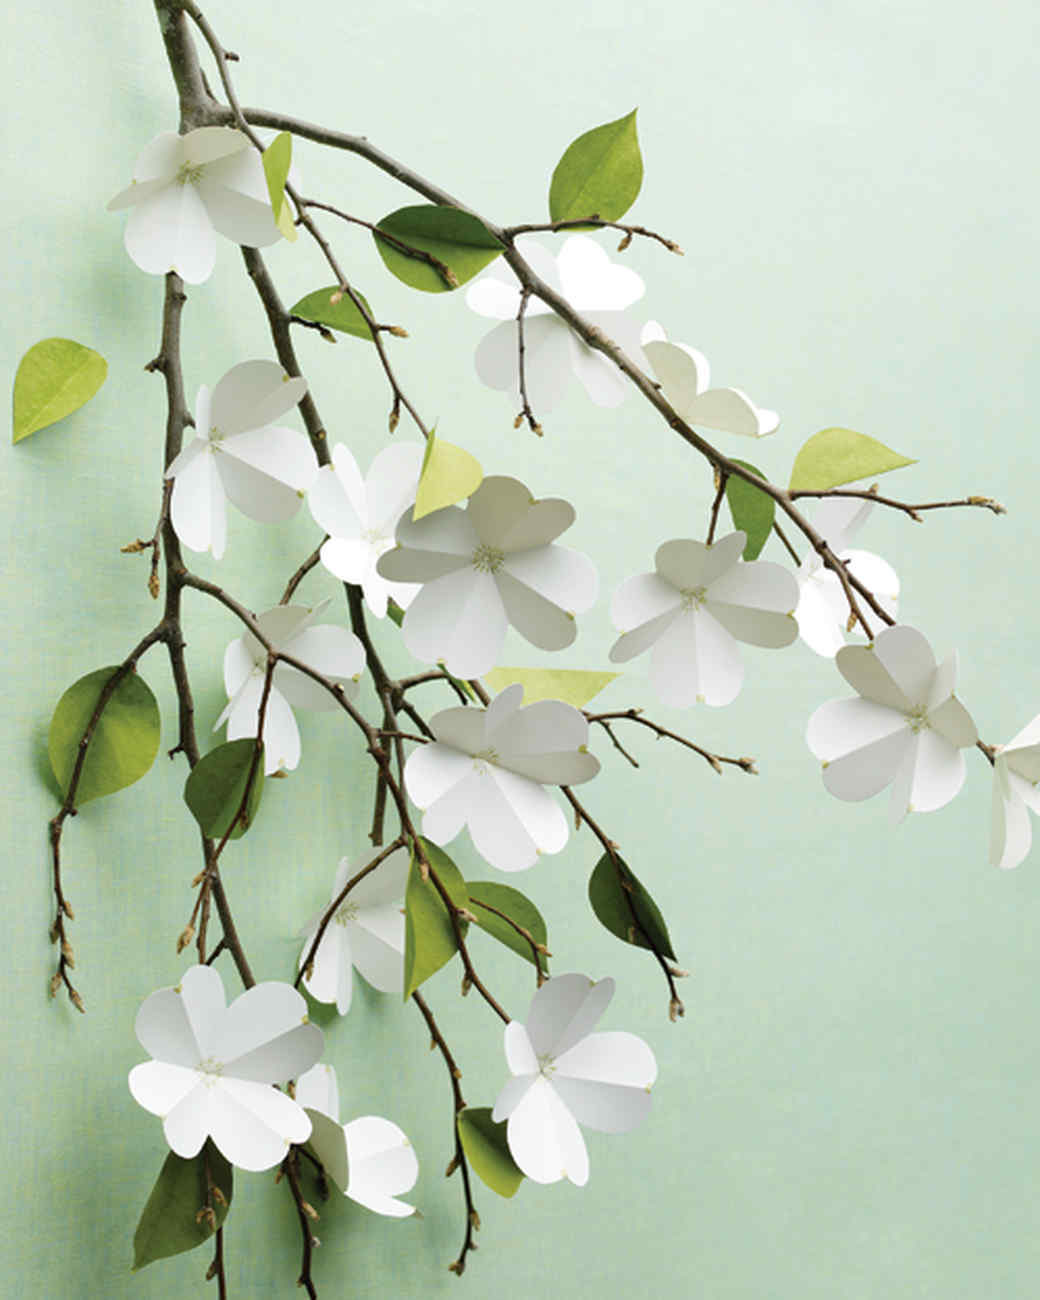 Paper dogwood flowers - Martha Stewart. Pink & Gold Bridal Shower Decor, DIY + Gift Ideas...certainly lovely indeed. Decorating ideas for bridal showers and gift guide as well as DIY ideas for romantic paper flowers!